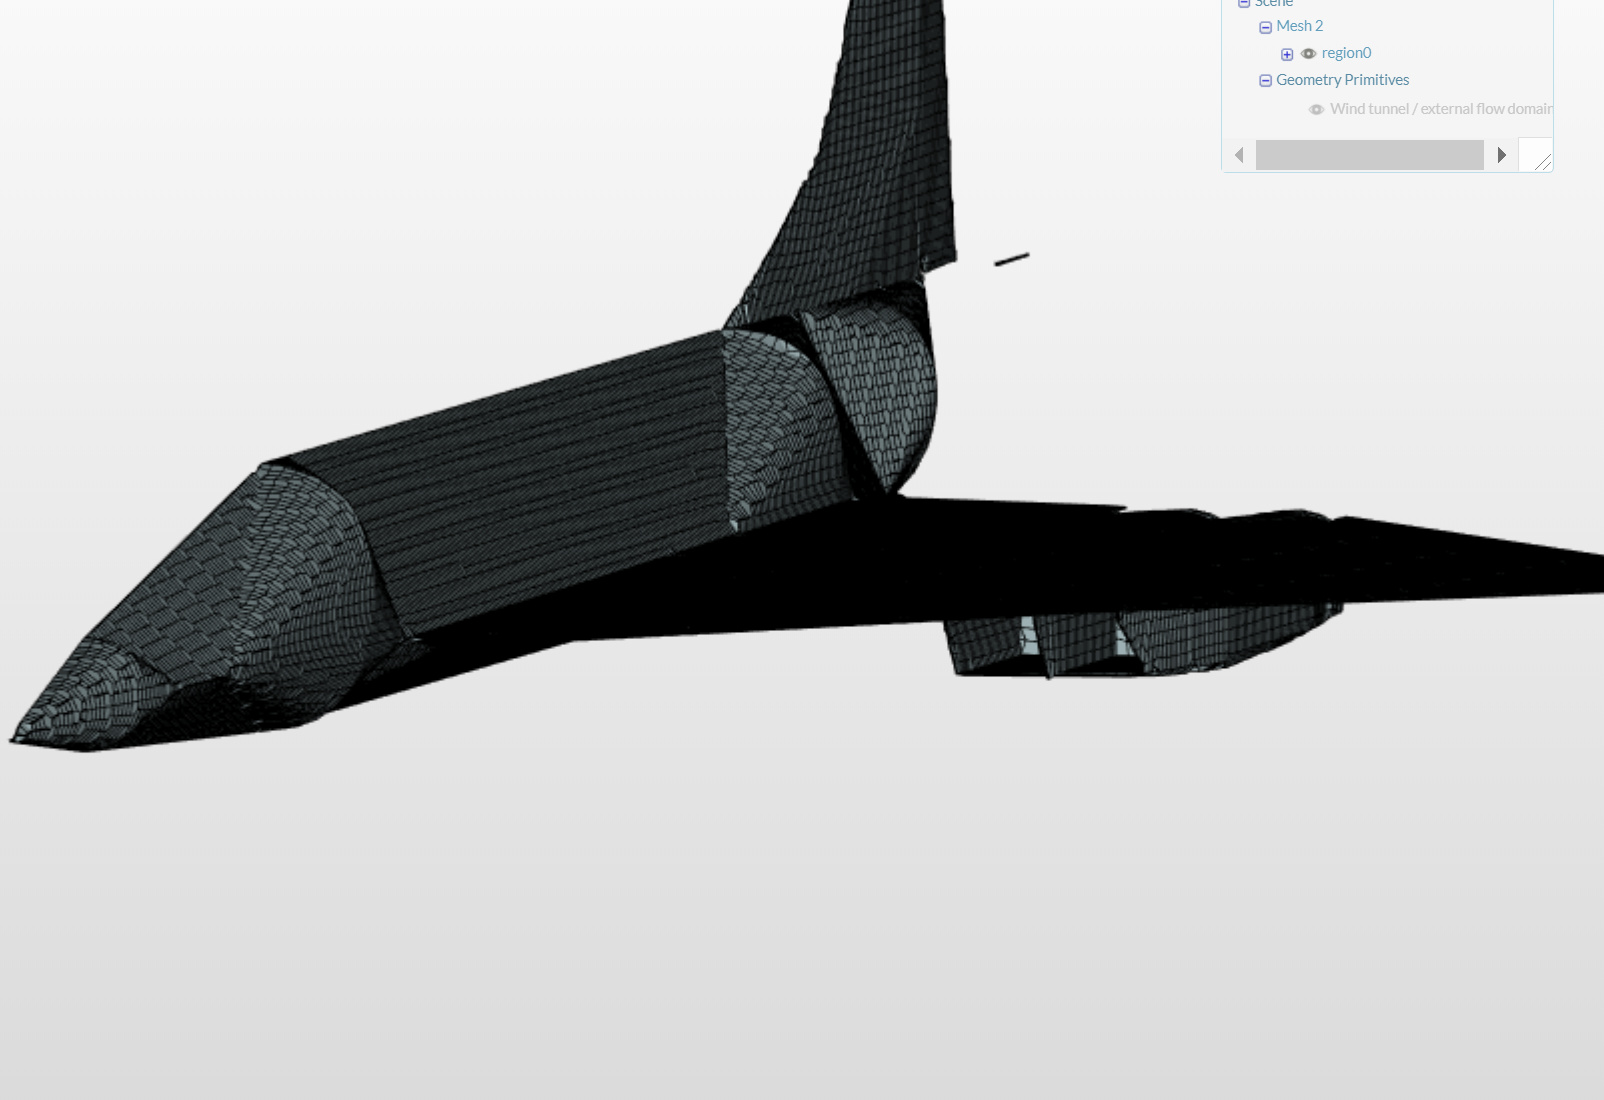 Hex mesh ignoring faces - Project Support - SimScale CAE Forum